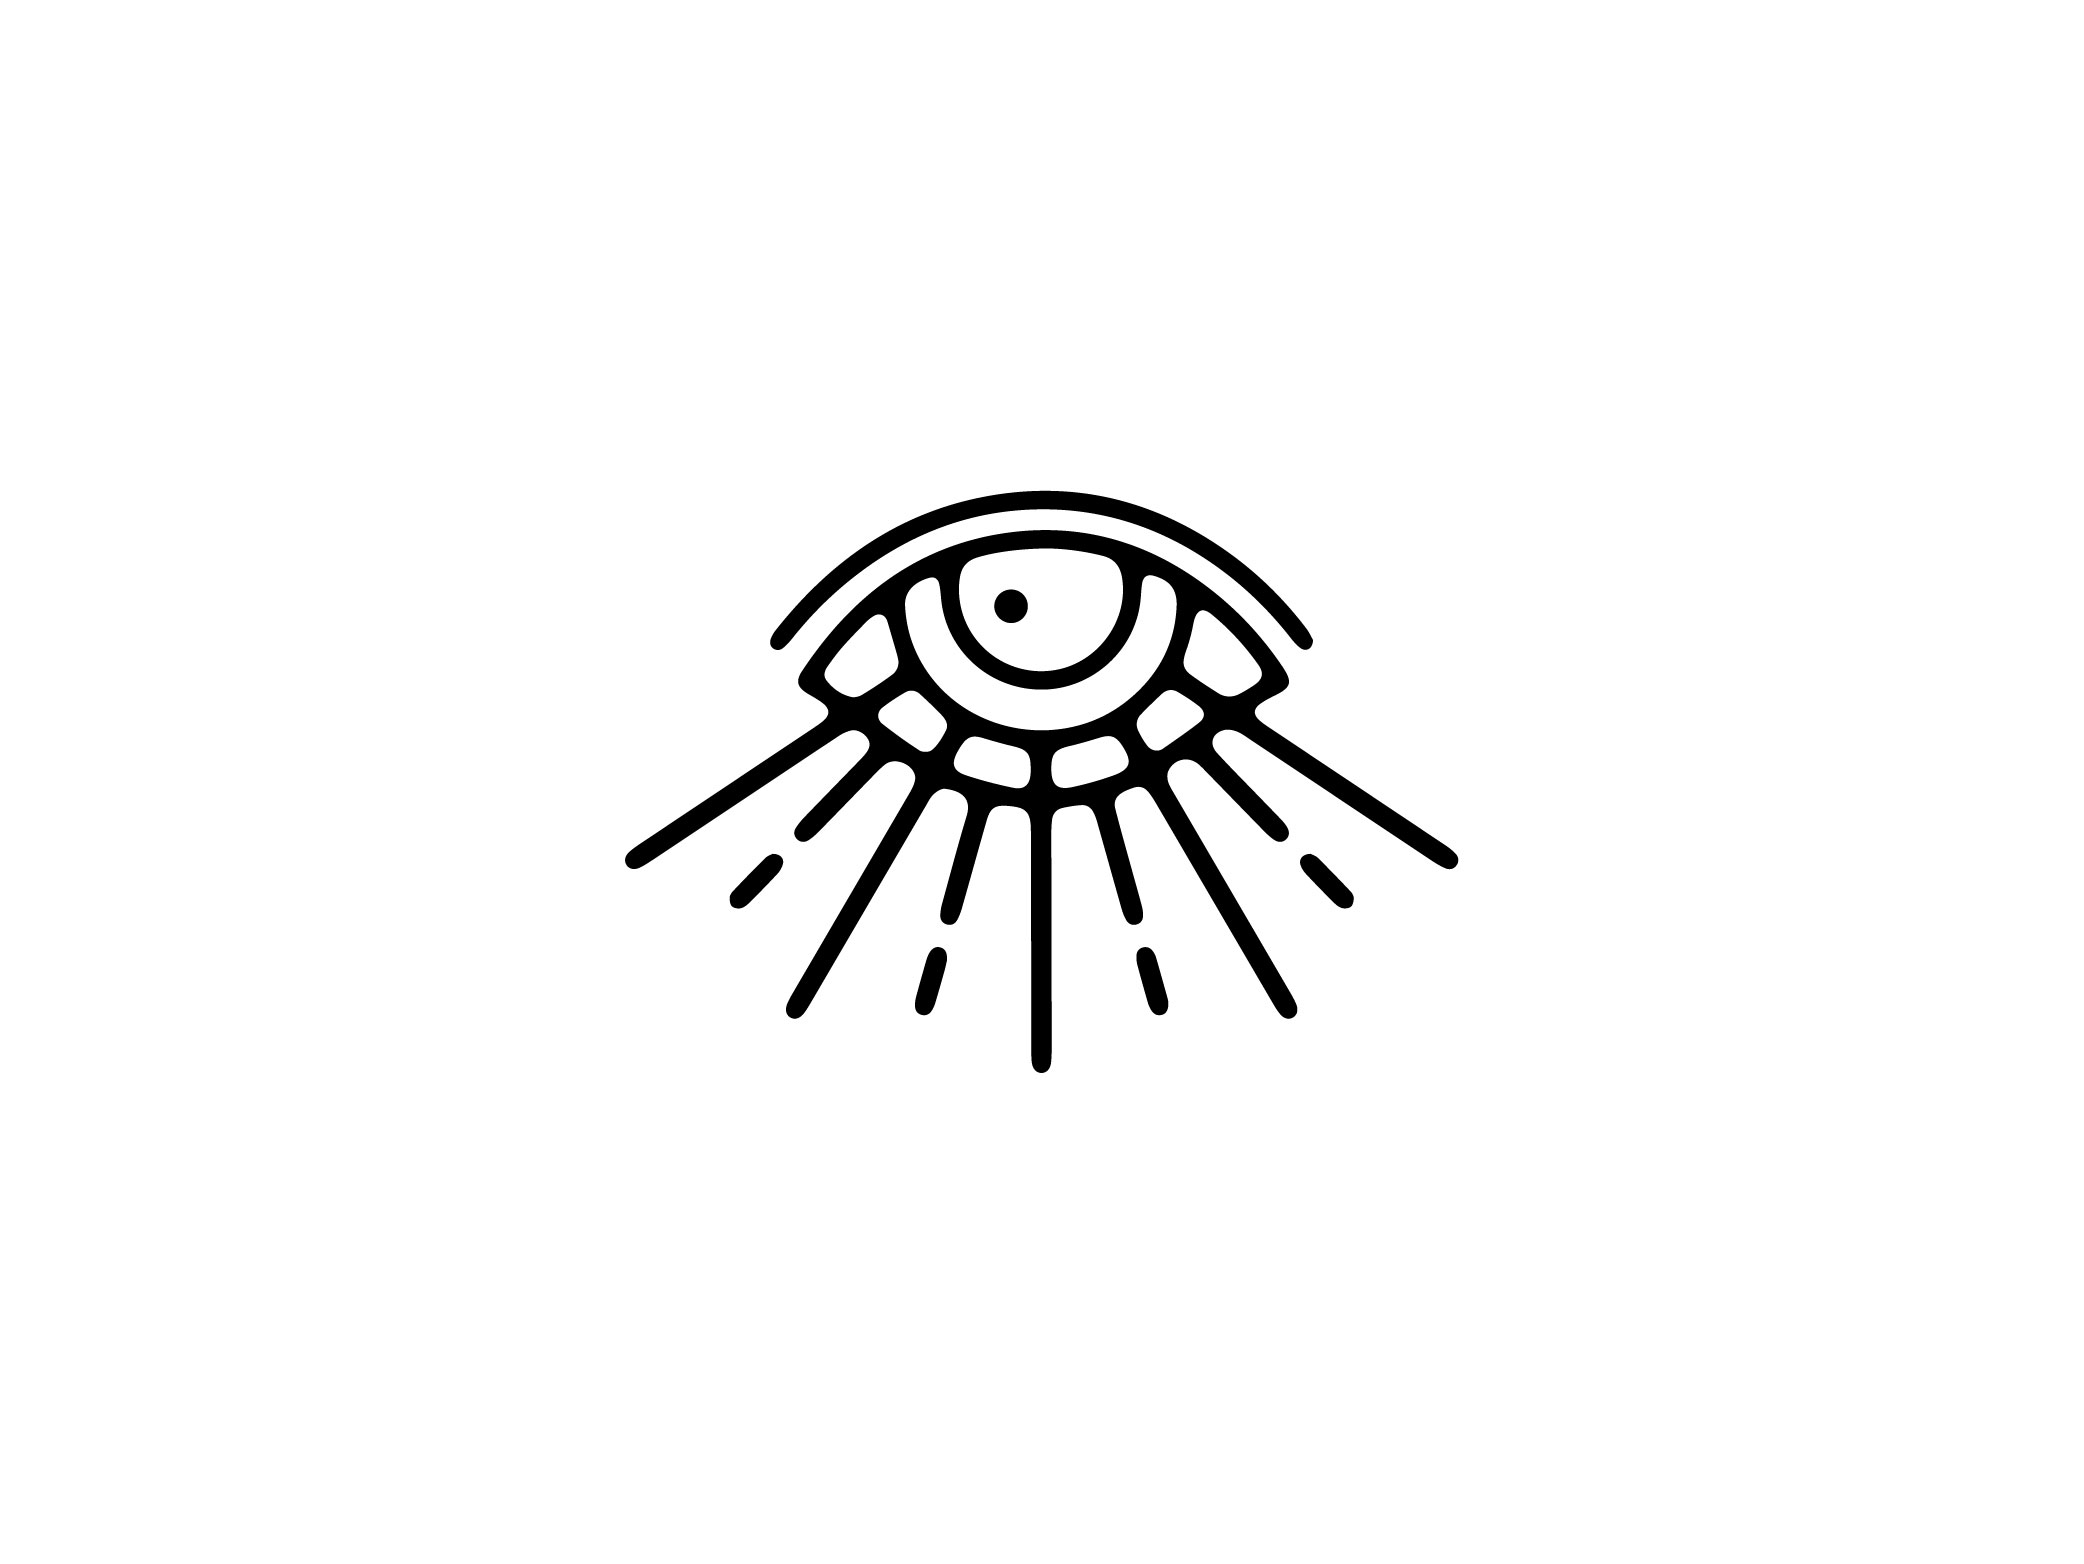 Studio Freight - Eye Icon